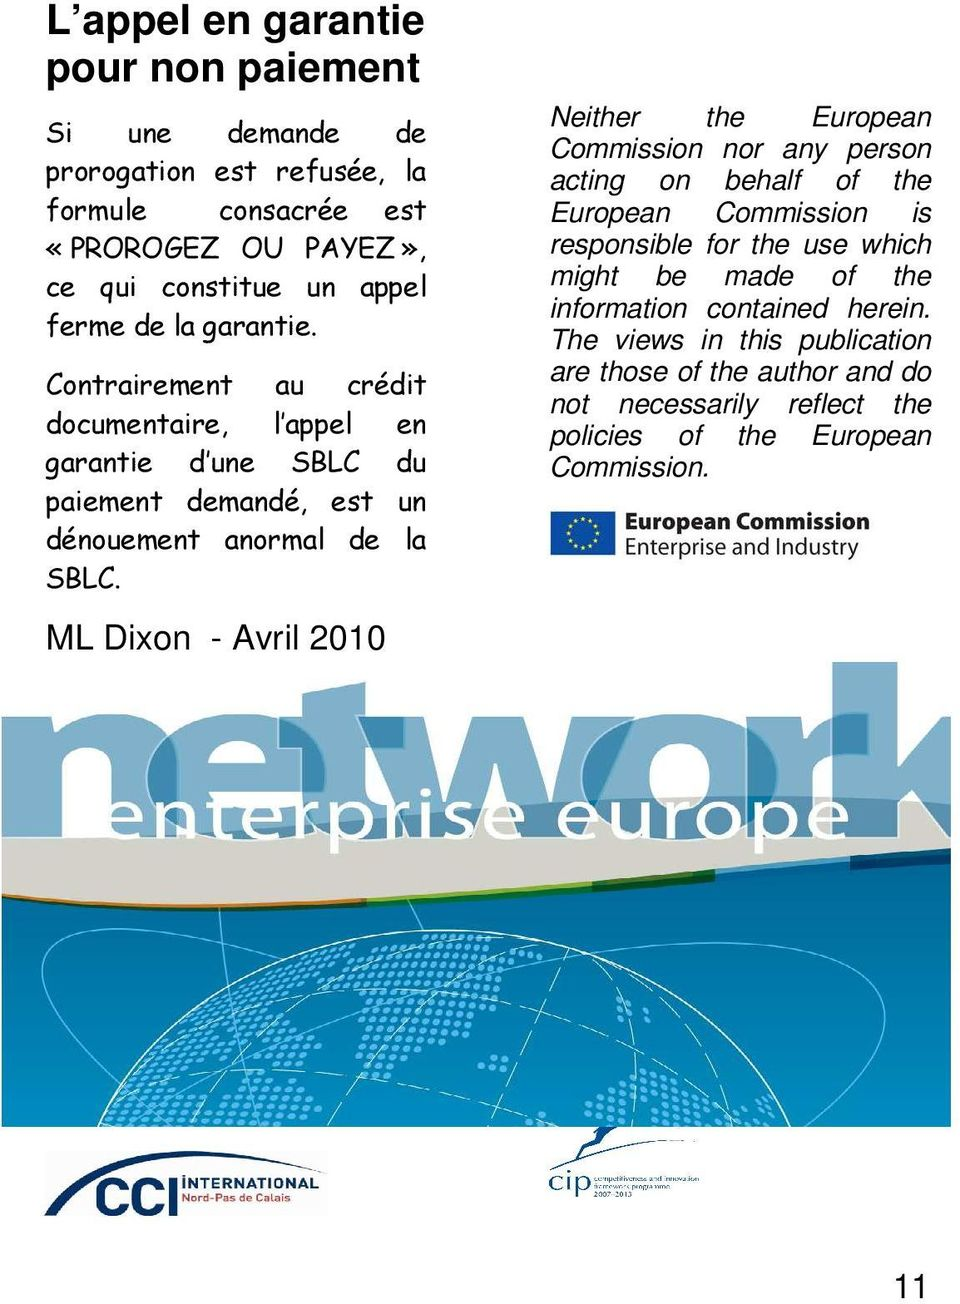 ML Dixon - Avril 2010 Neither the European Commission nor any person acting on behalf of the European Commission is responsible for the use which might be